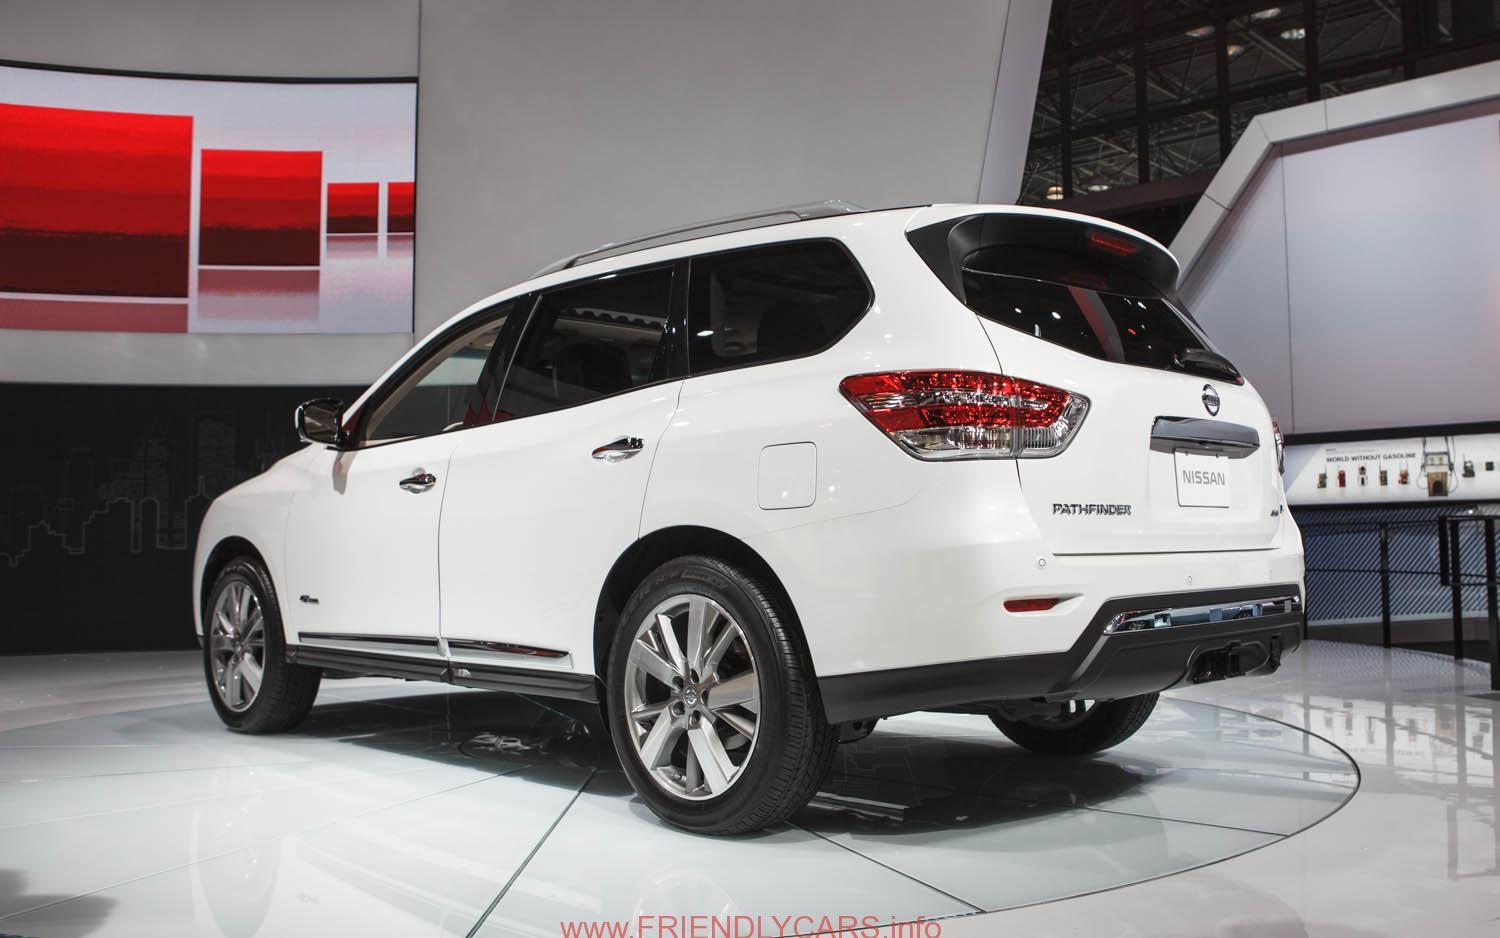 Awesome Nissan Rogue 2017 White Car Images Hd 2016 Hybrid High Resolution Wallpaper Dlwallhd